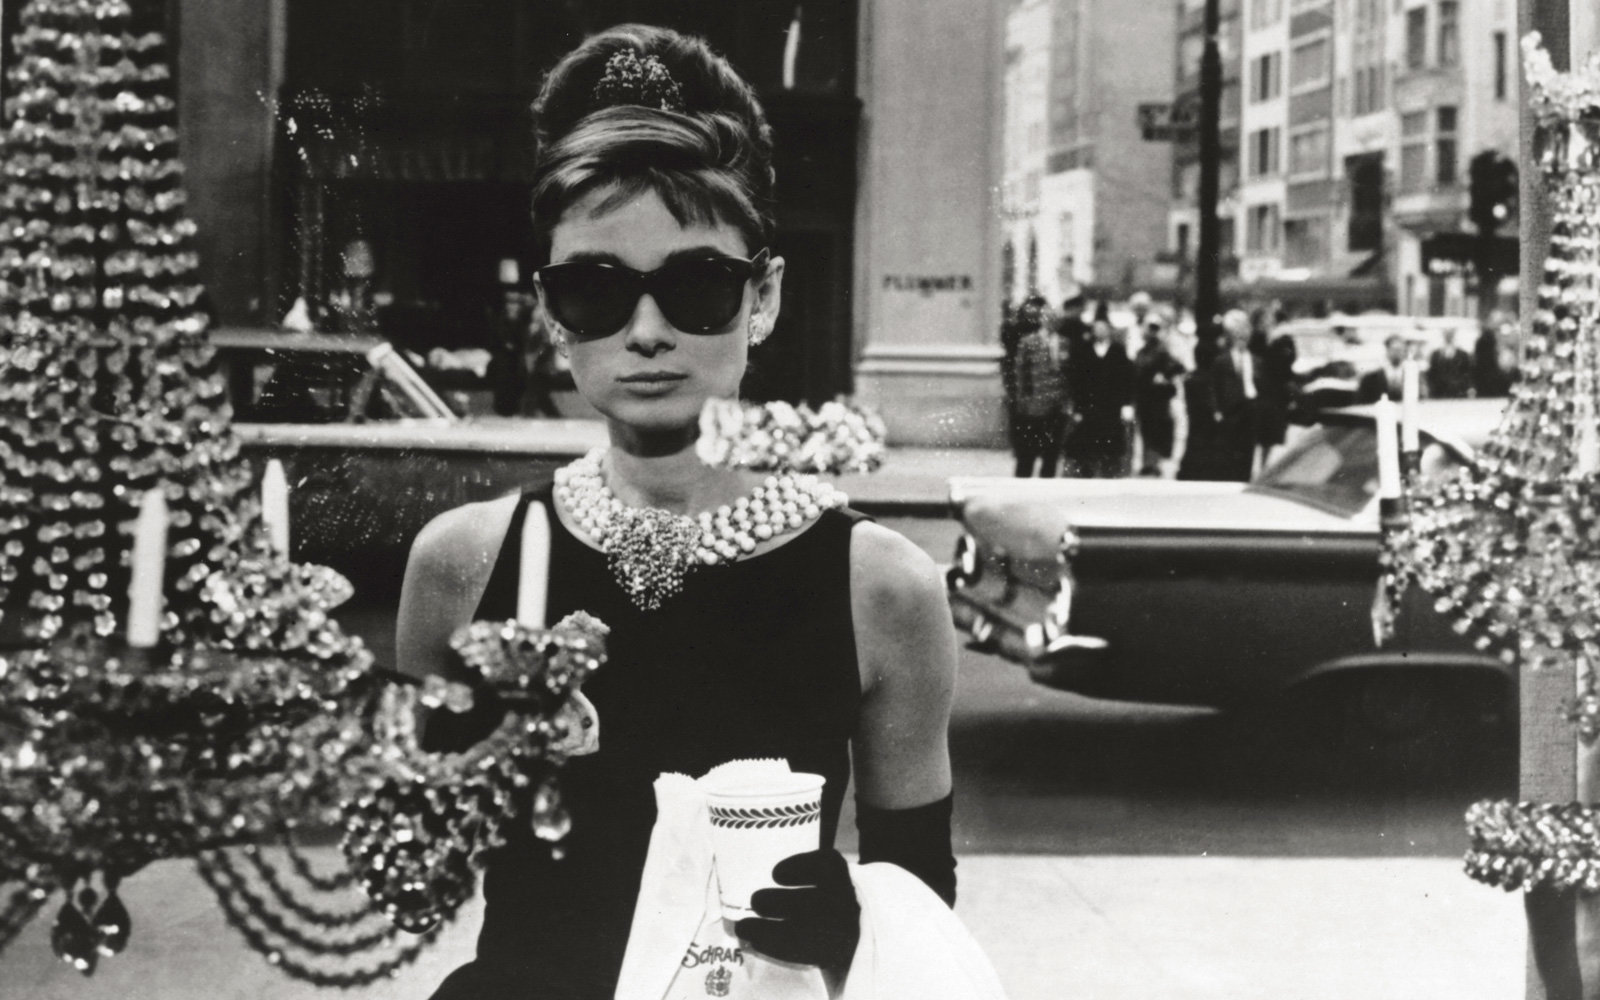 Breakfast at Tiffany's is now a reality